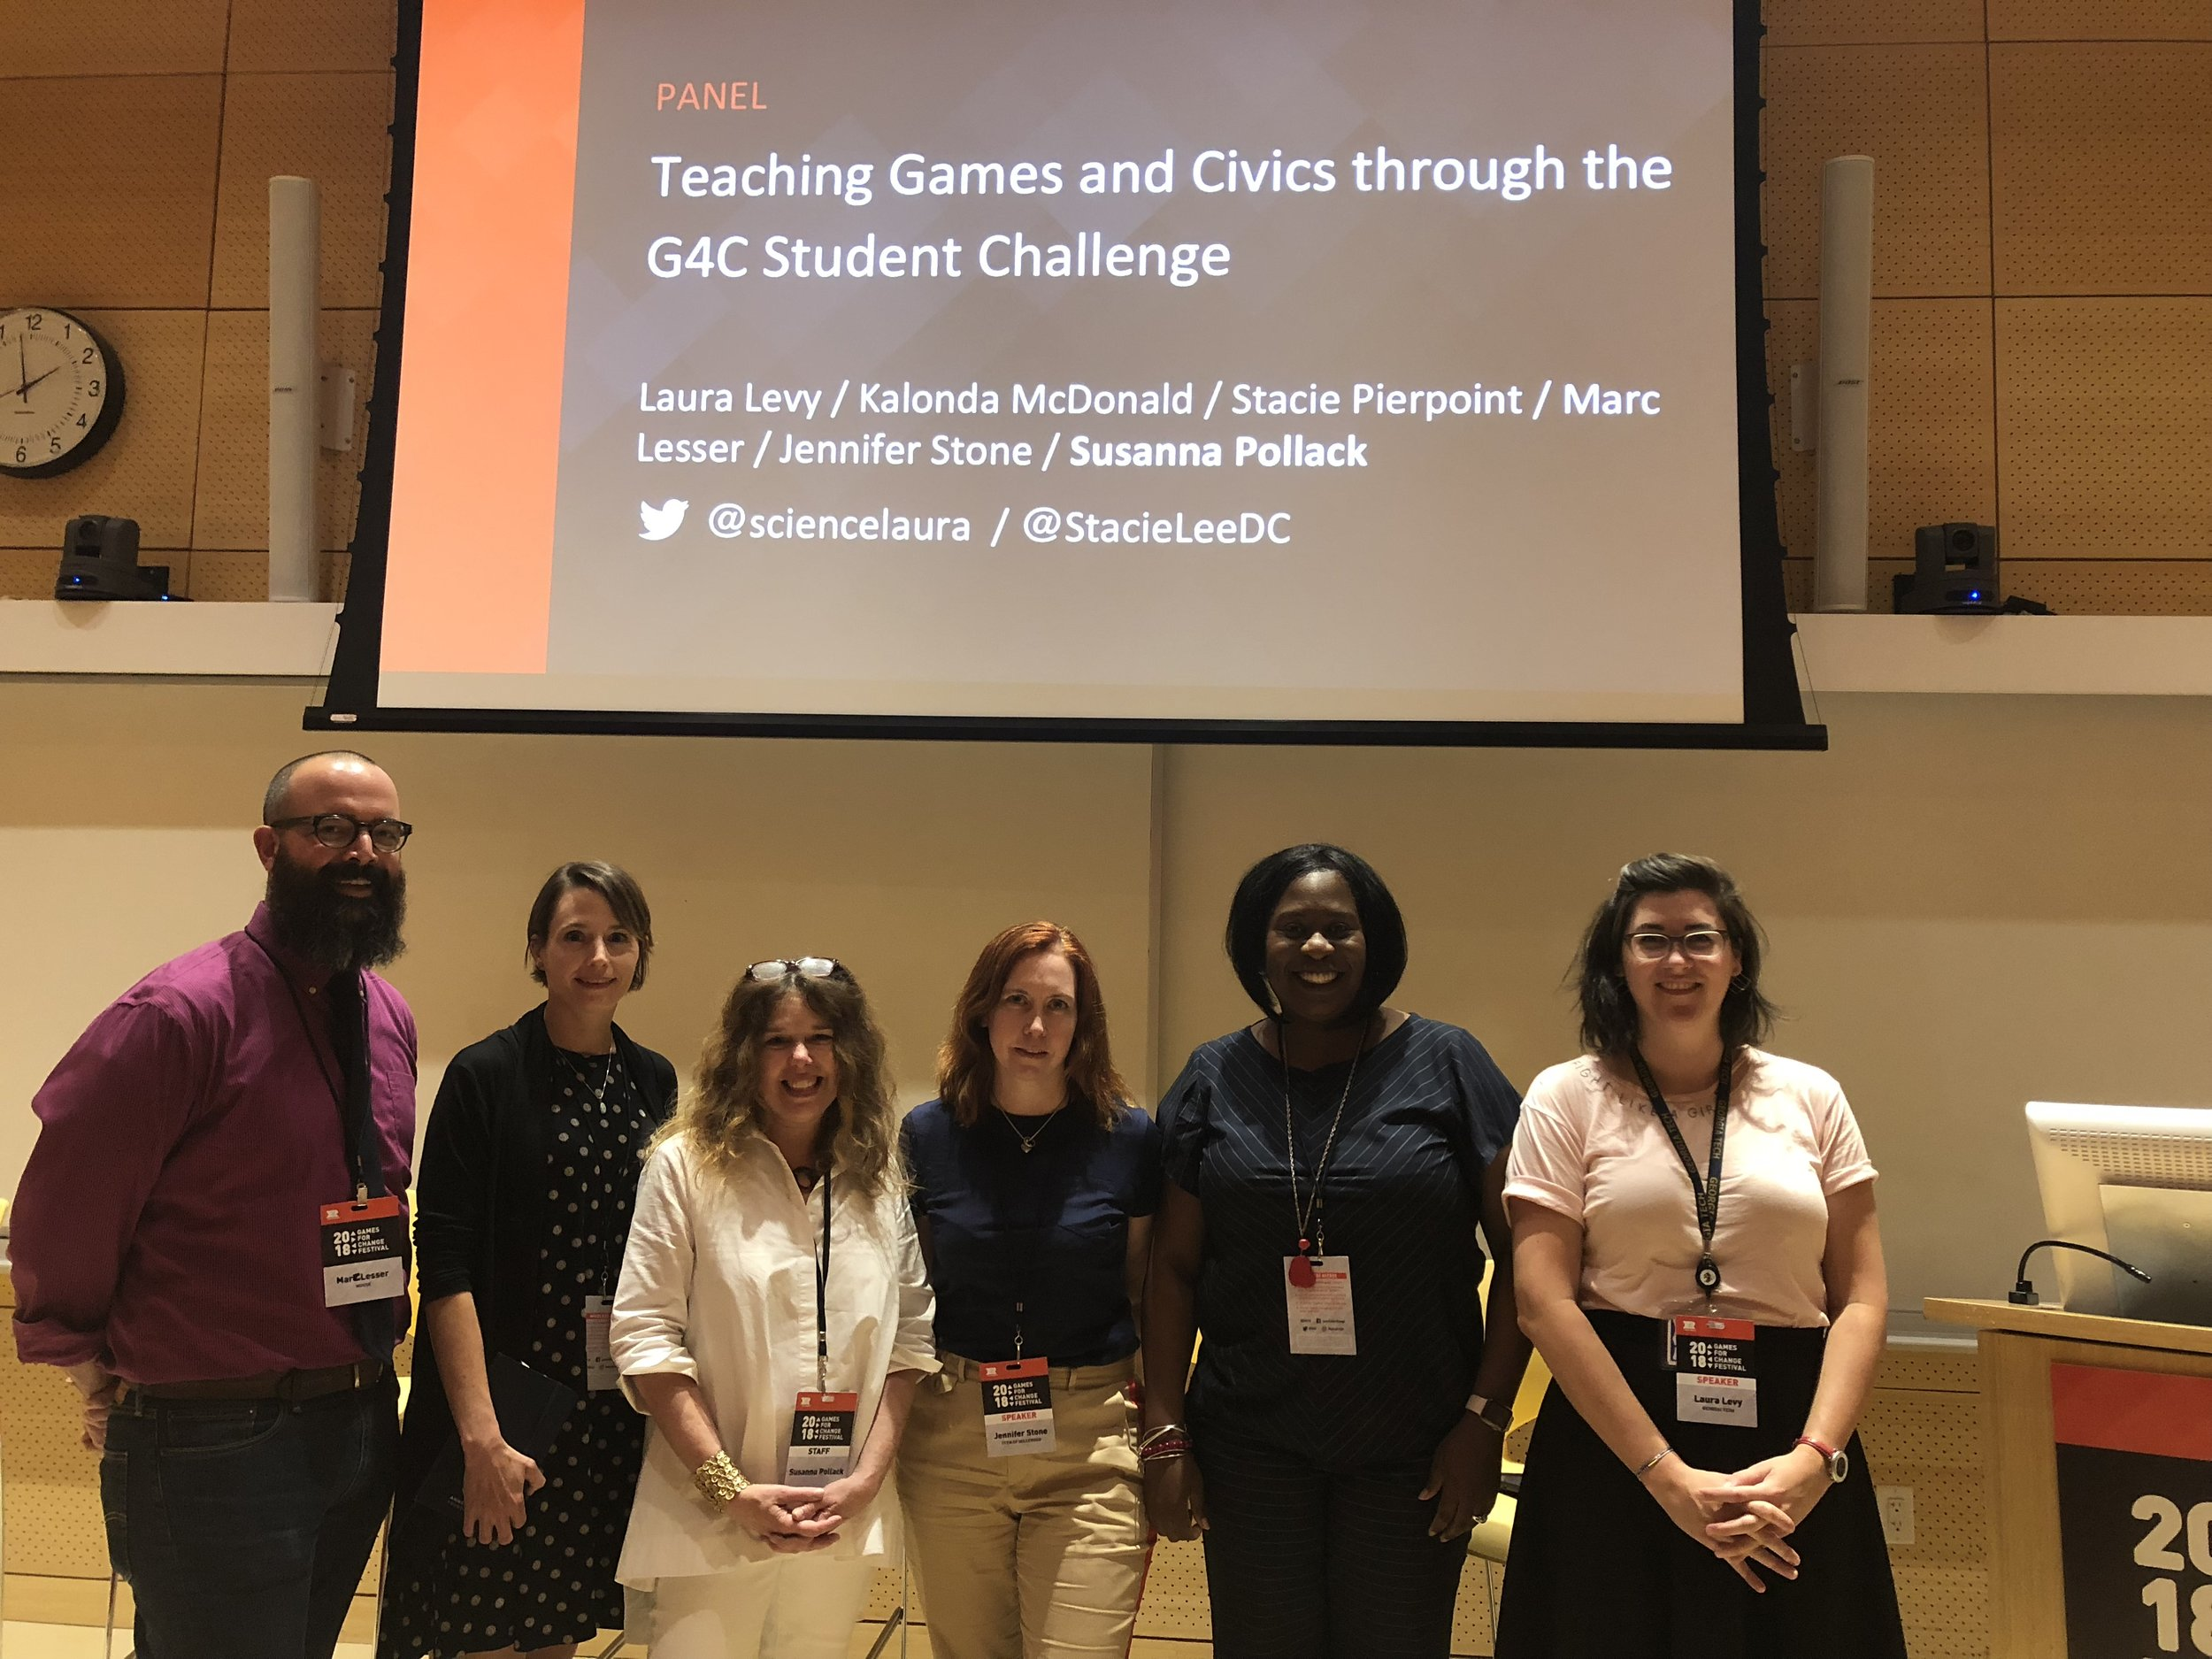 Games for Change Festival 2018: representing Georgia Tech as an anchor partner in the Games for Change Student Challenge